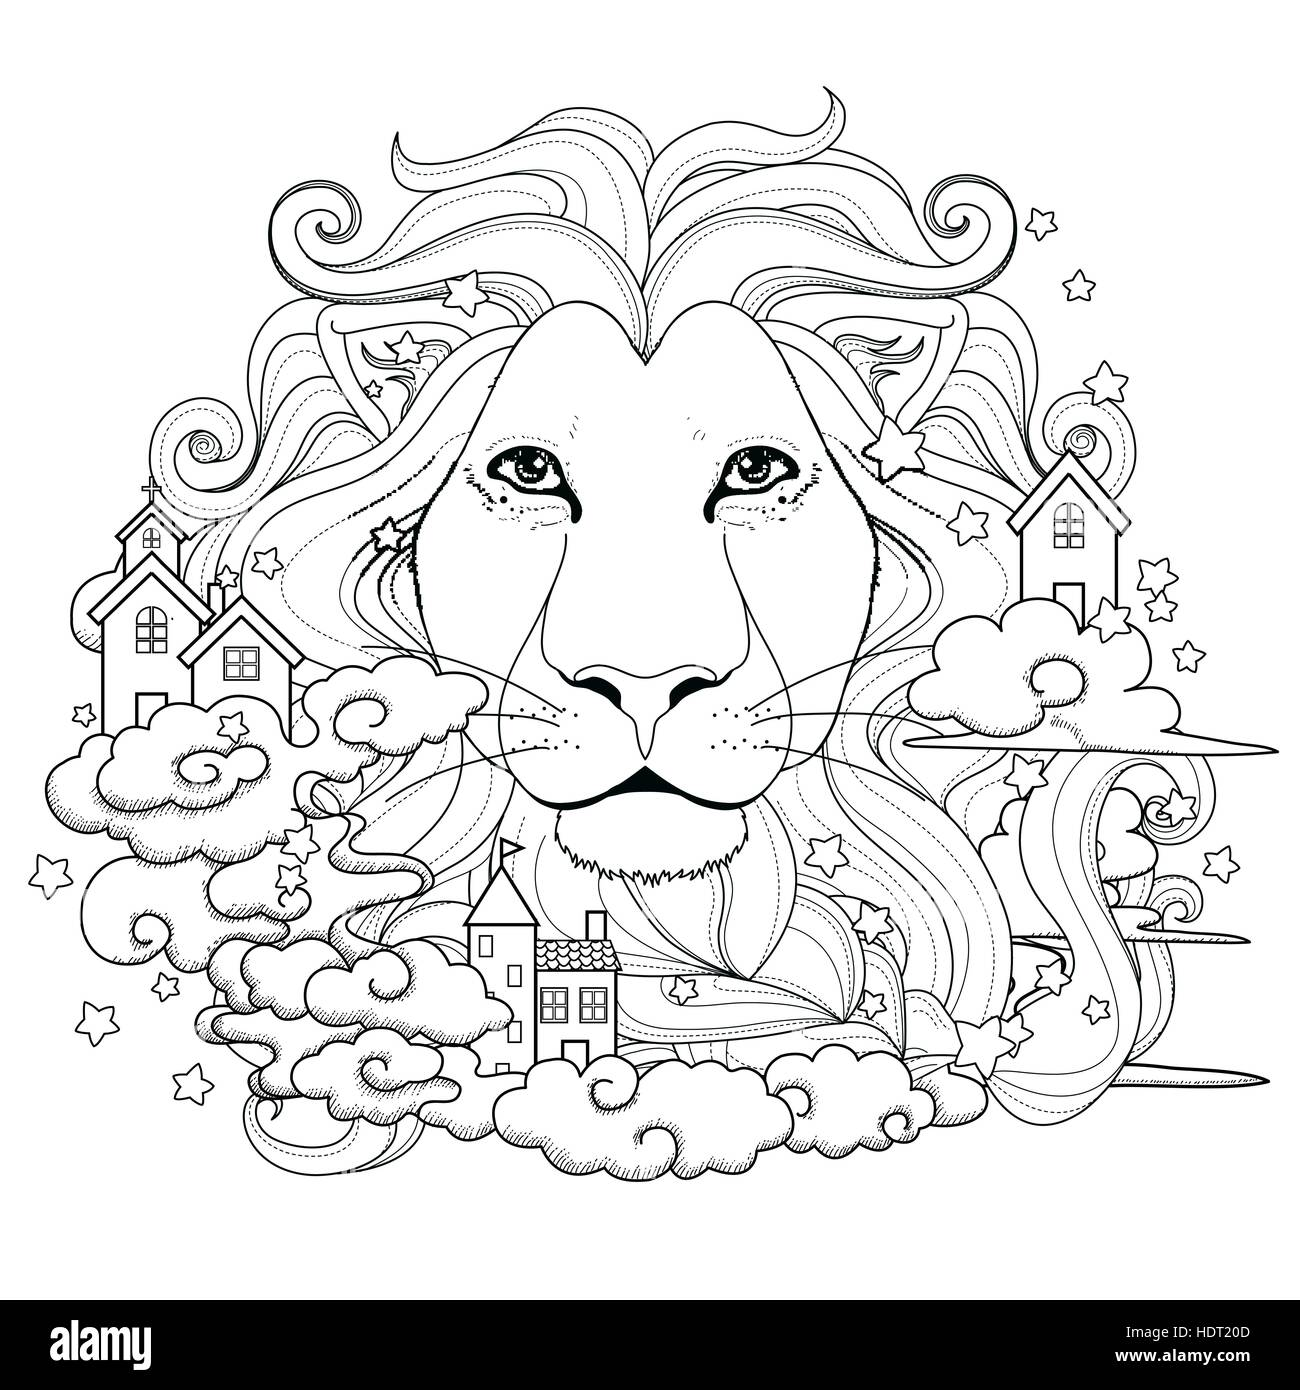 lovely lion coloring page in exquisite style stock vector art